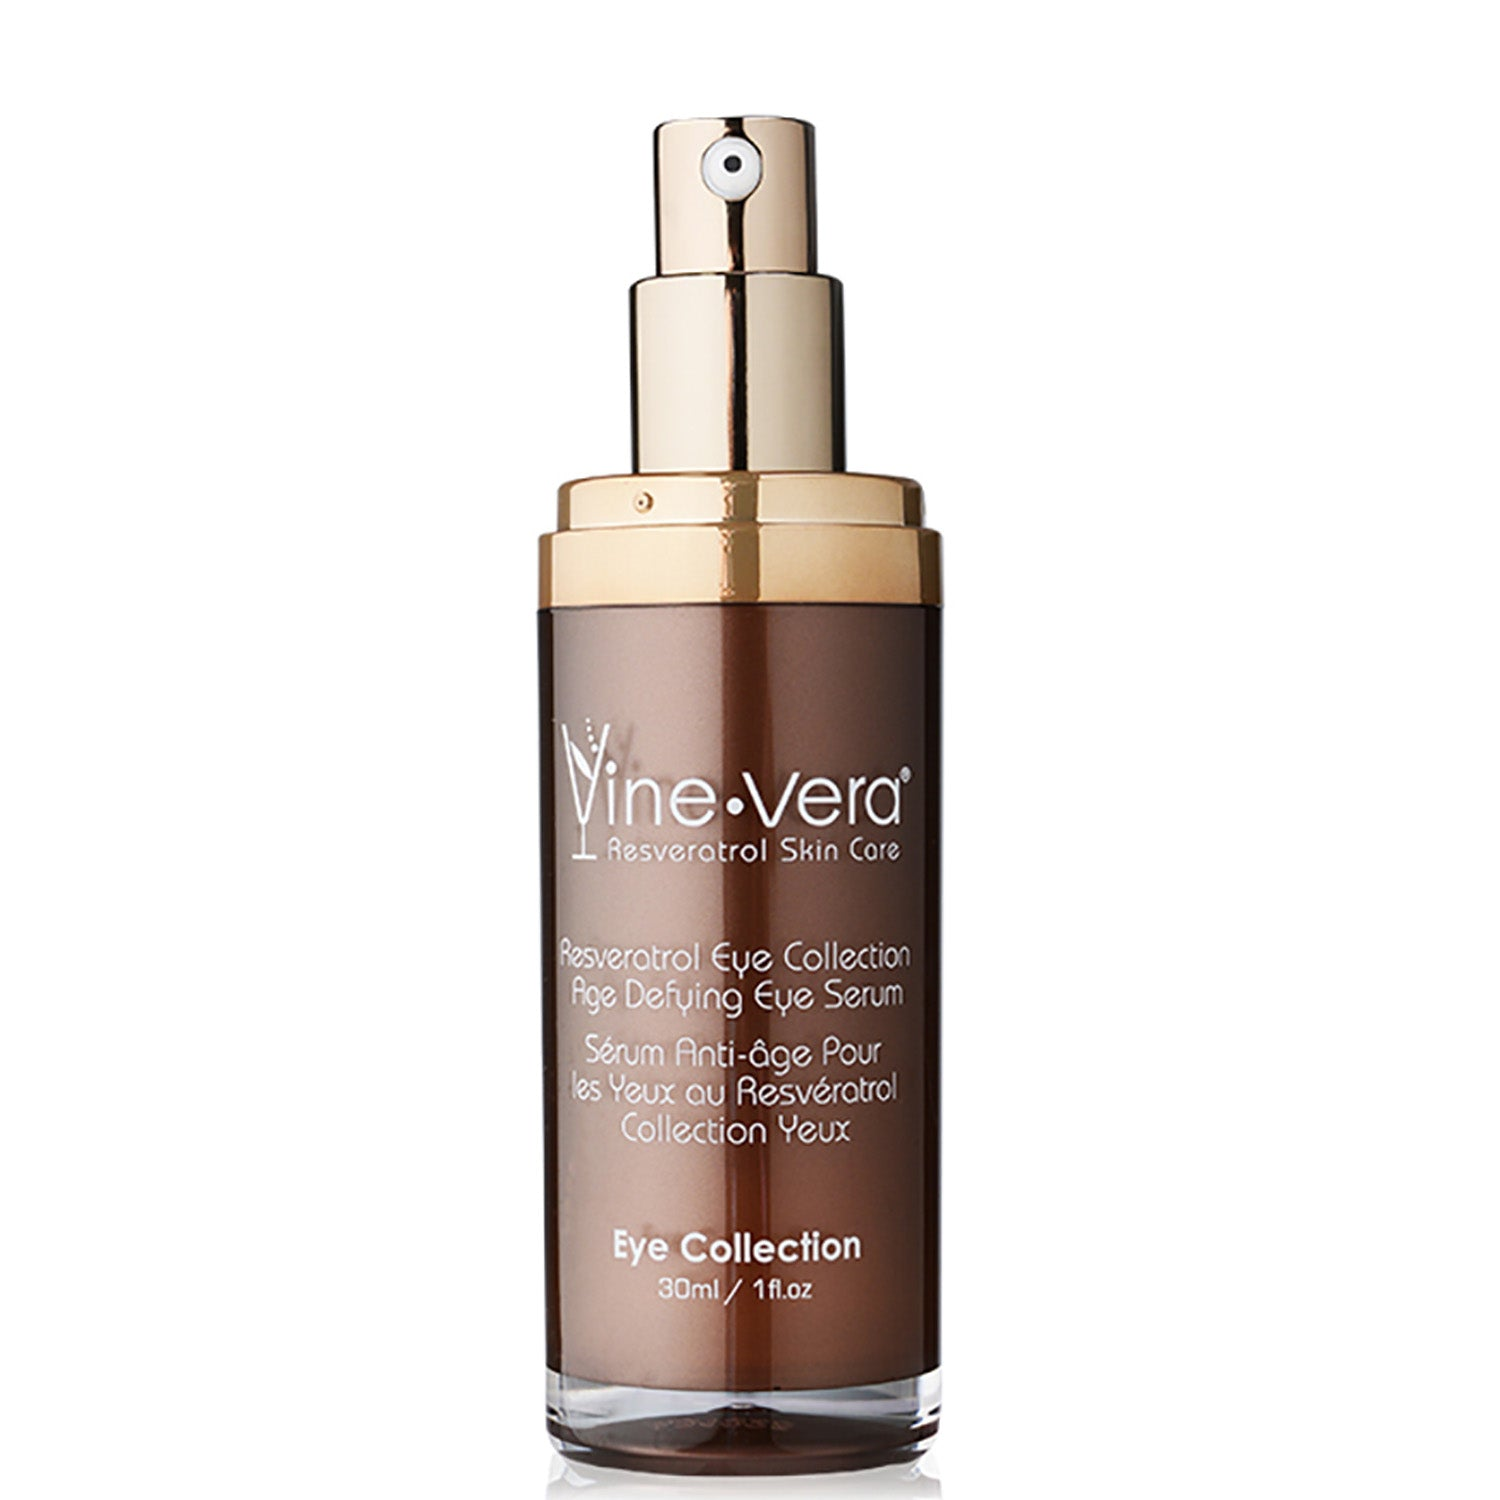 Vine Vera Age Defying Resveratrol Eye Serum For Wrinkles